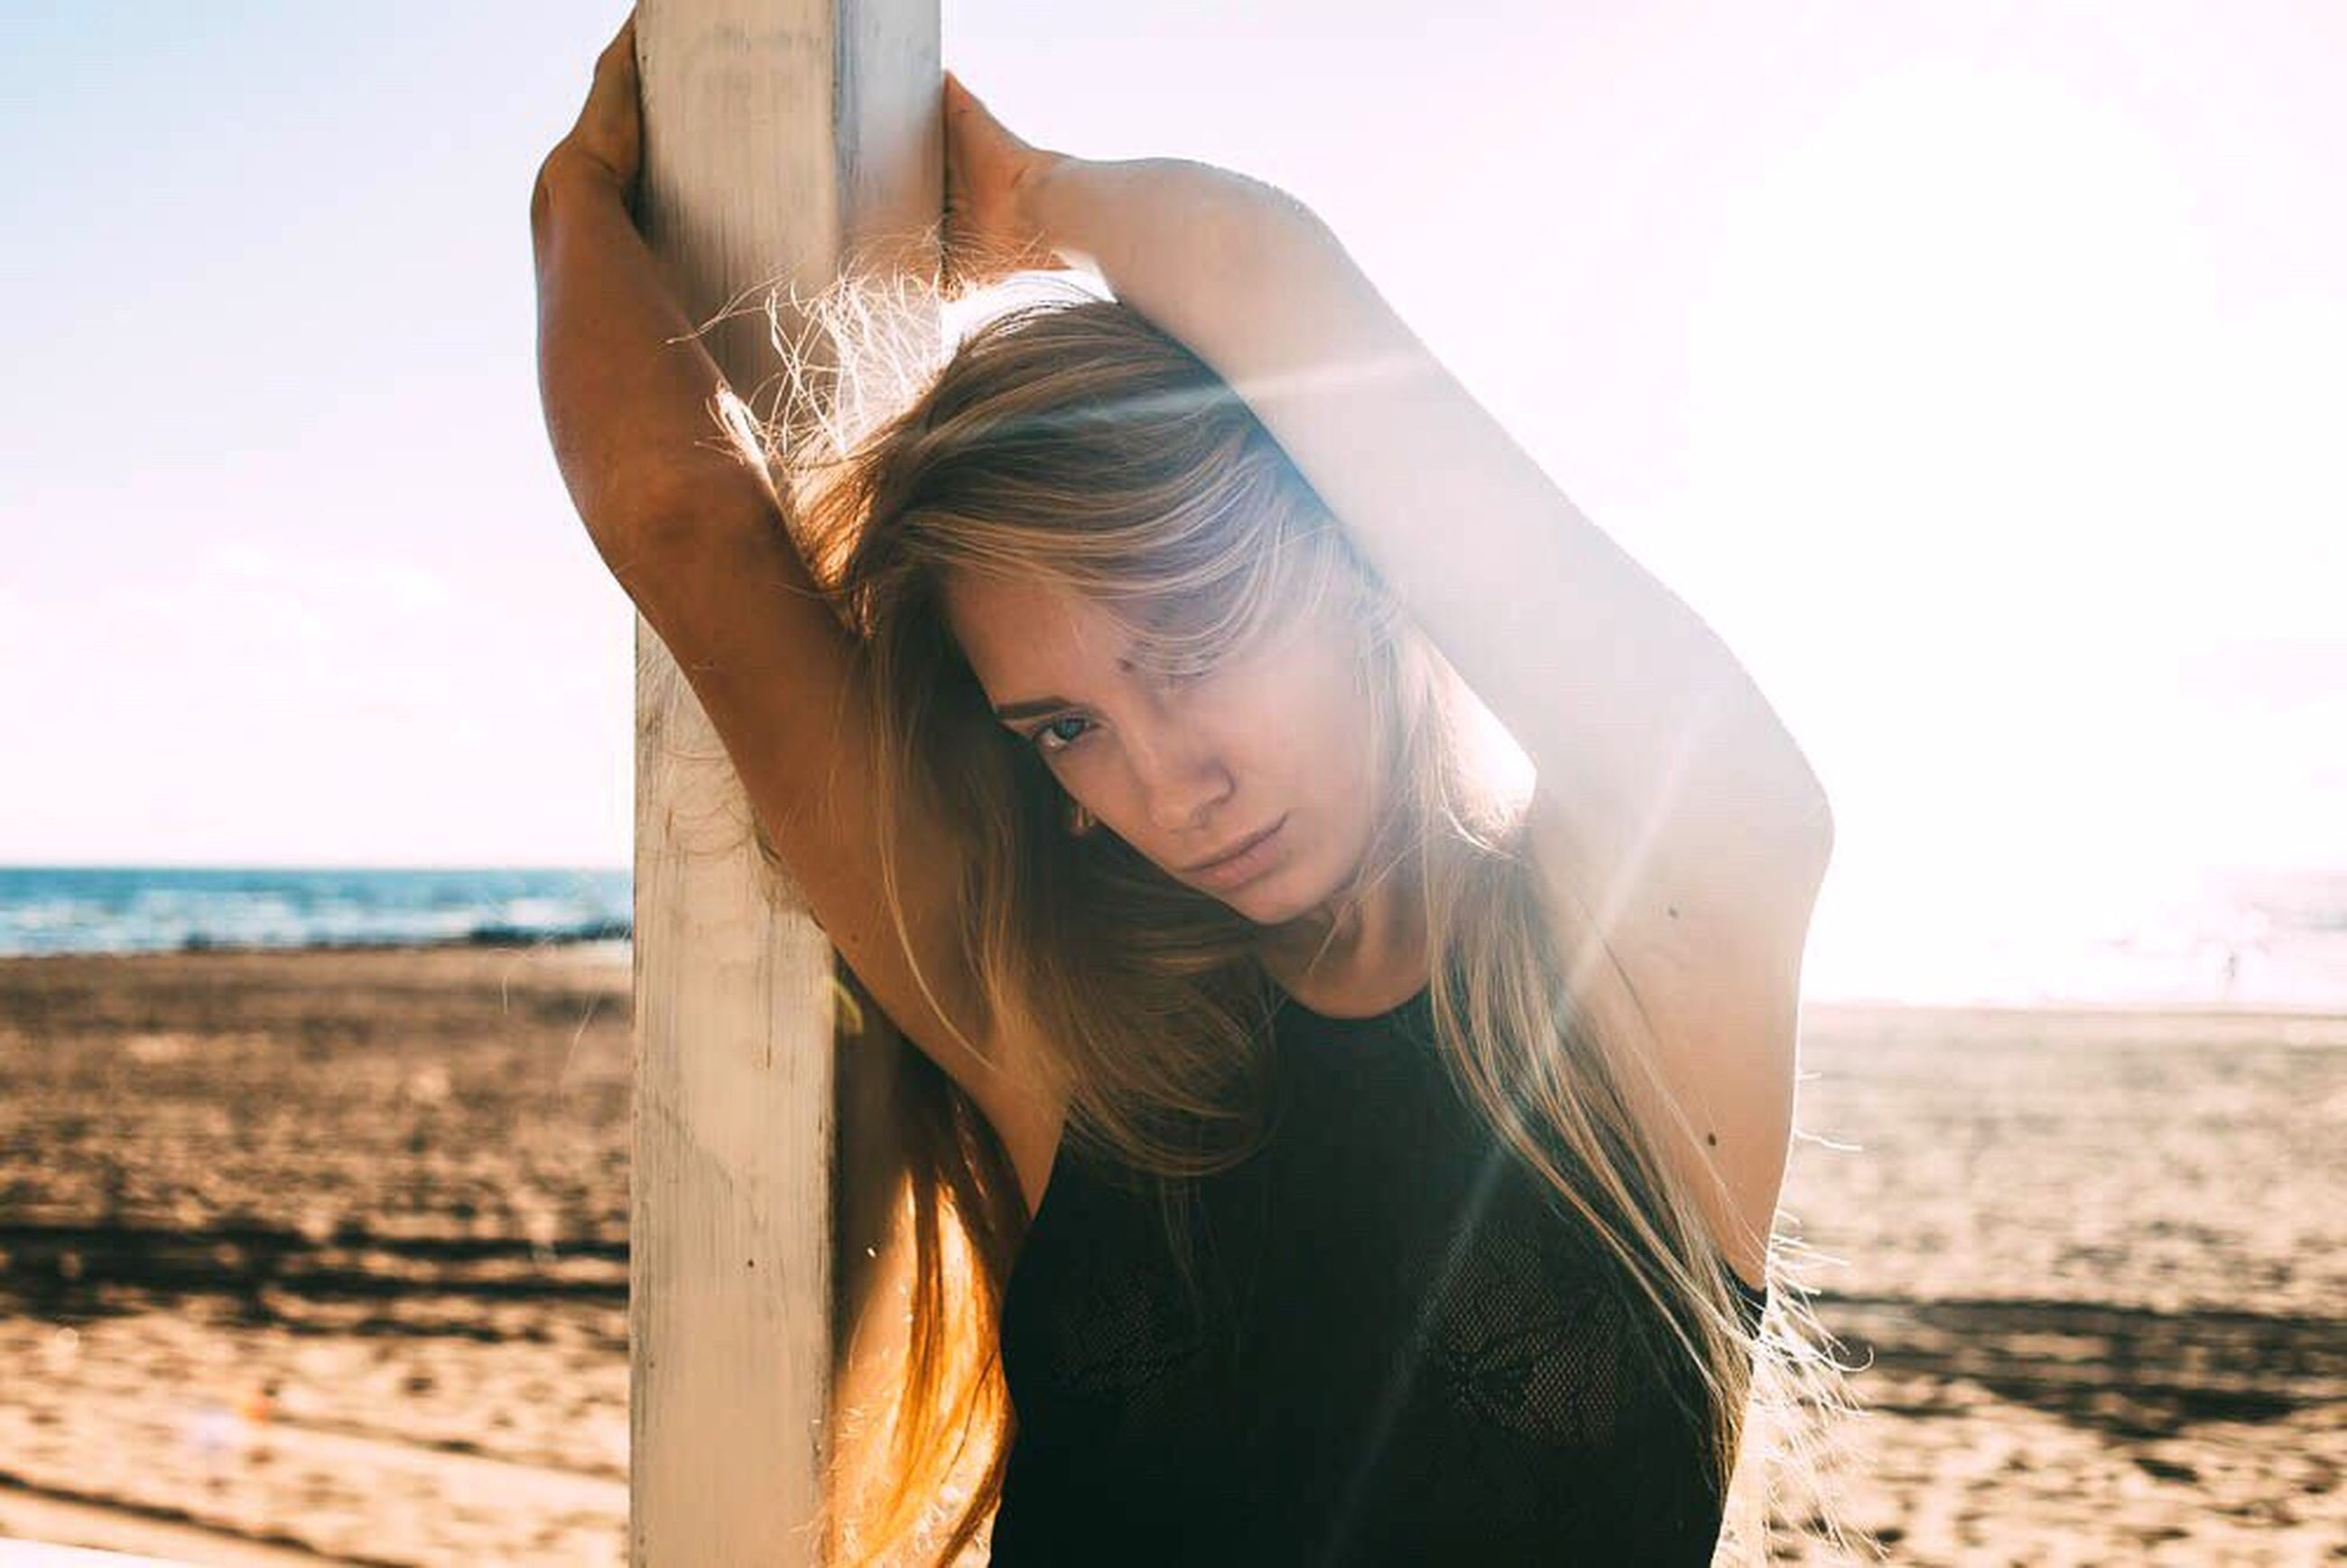 beach, sea, horizon over water, clear sky, water, shore, young adult, sand, lifestyles, leisure activity, focus on foreground, sky, tranquility, nature, person, long hair, standing, young women